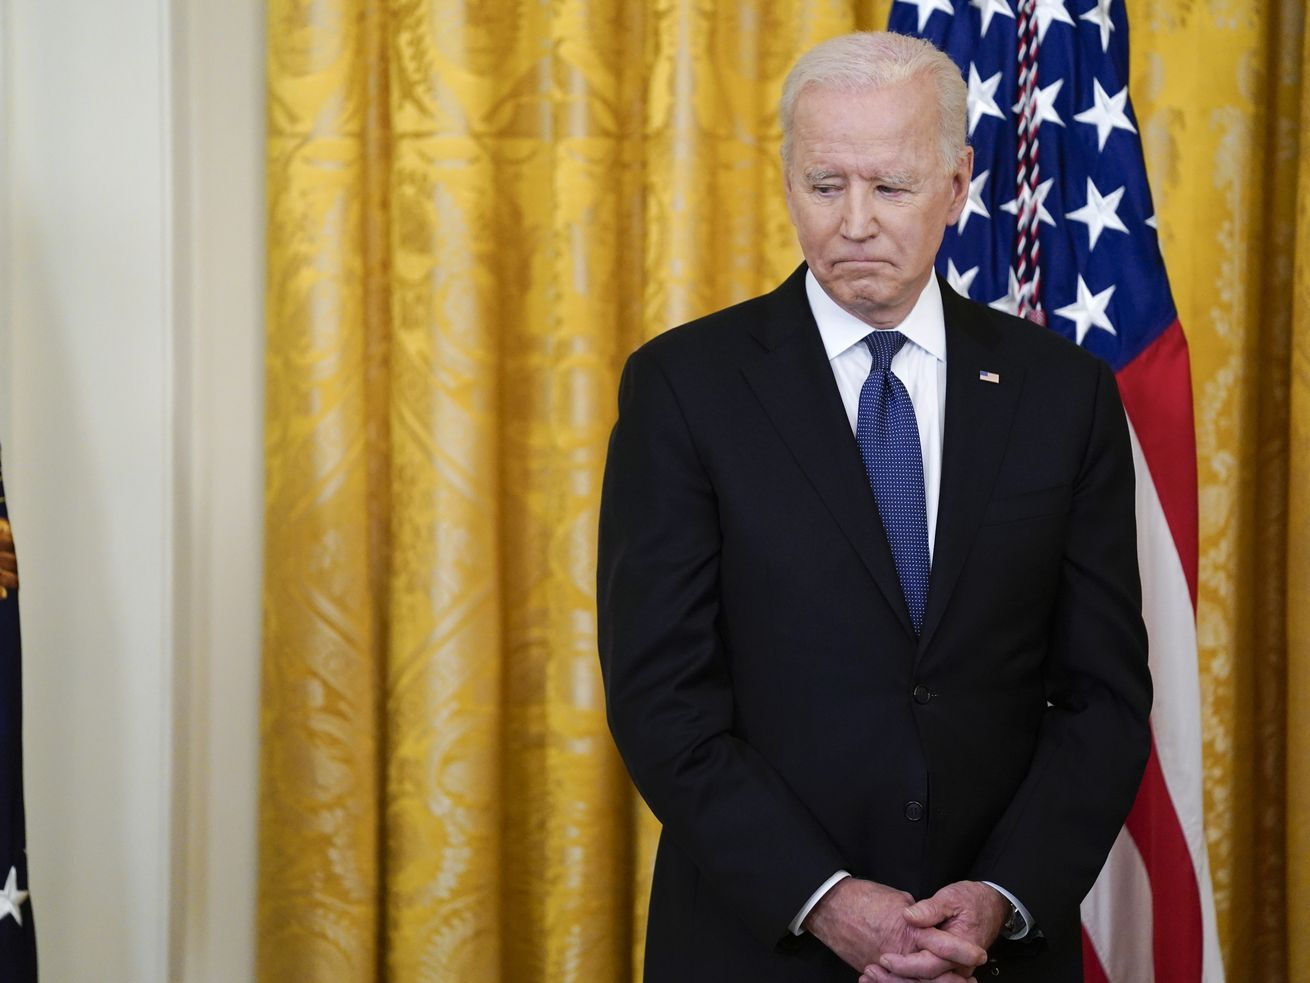 President Joe Biden looks towards the table with the COVID-19 Hate Crimes Act on it before the signing in the East Room of the White House, Thursday, May 20, 2021, in Washington.